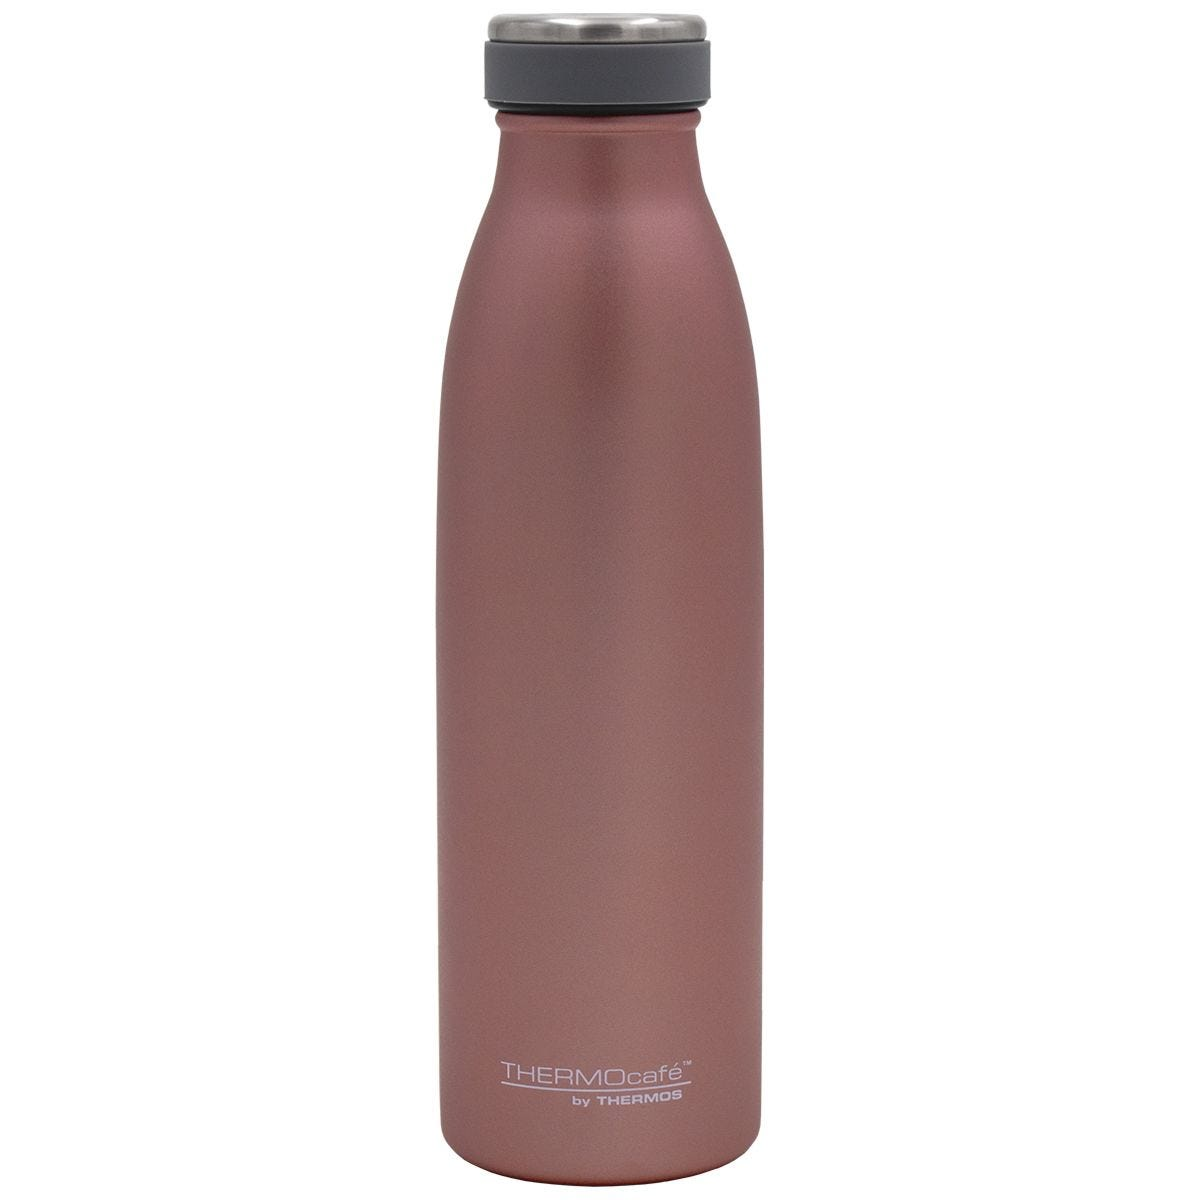 Thermocafe Stainless Steel Insulated 500ml Water Bottle - Rose Gold